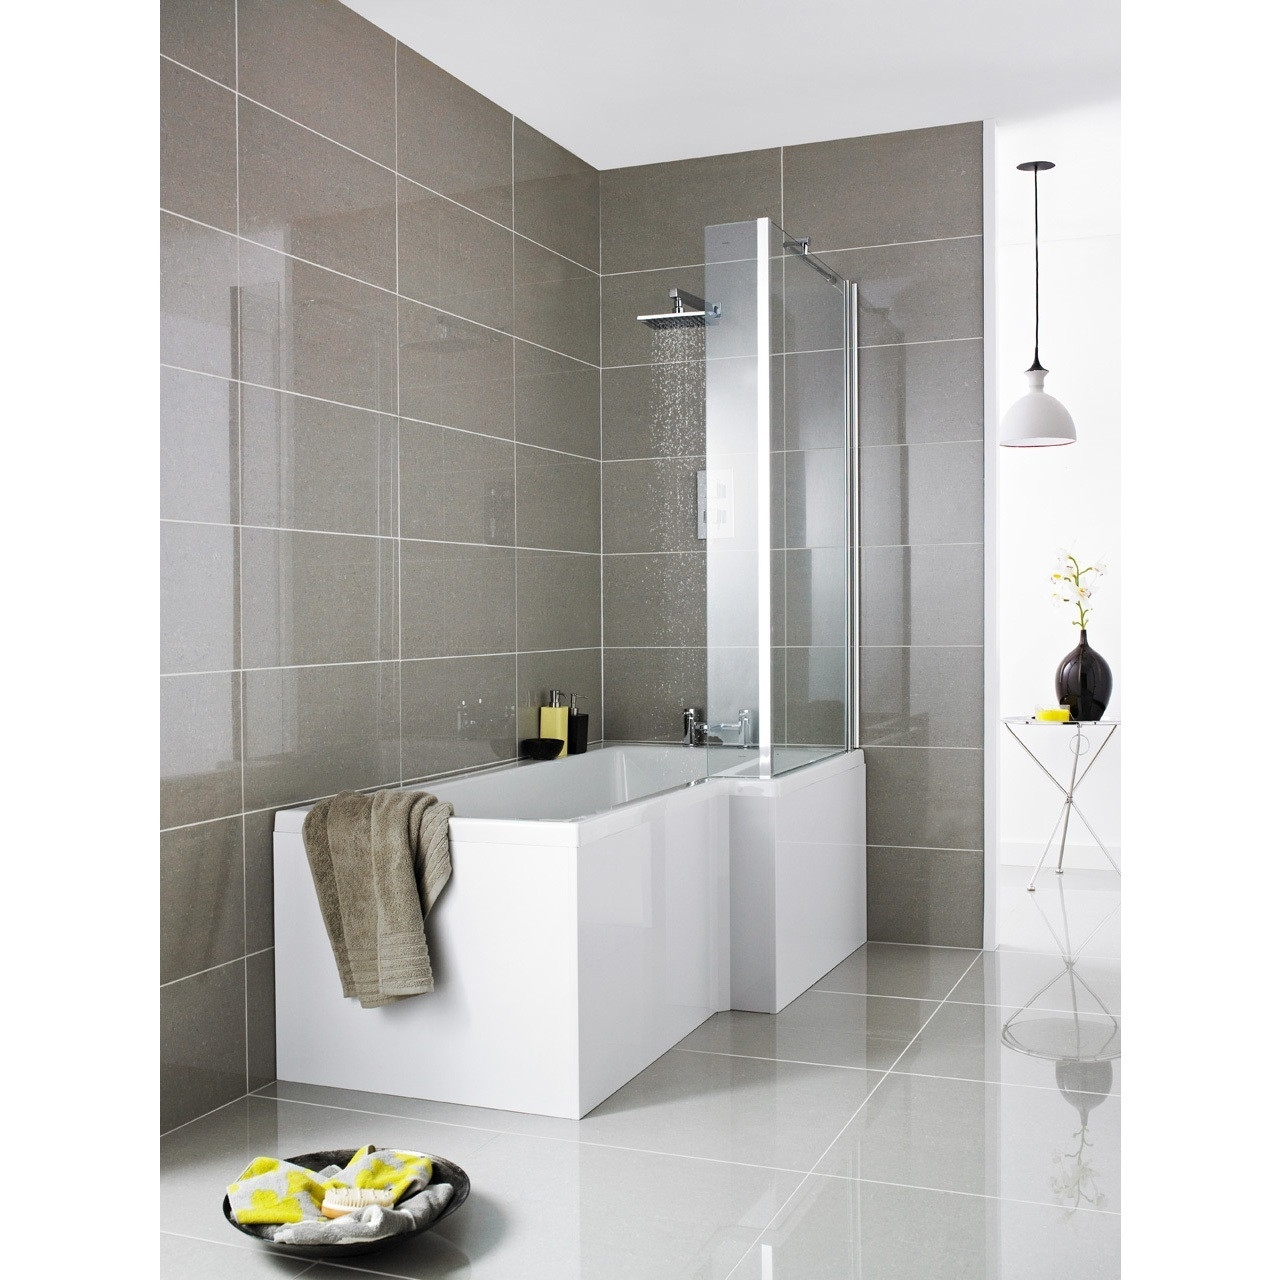 Premier Cove Square Right Hand Shower Bath 1700mm x 850mm x 700mm - SSB108